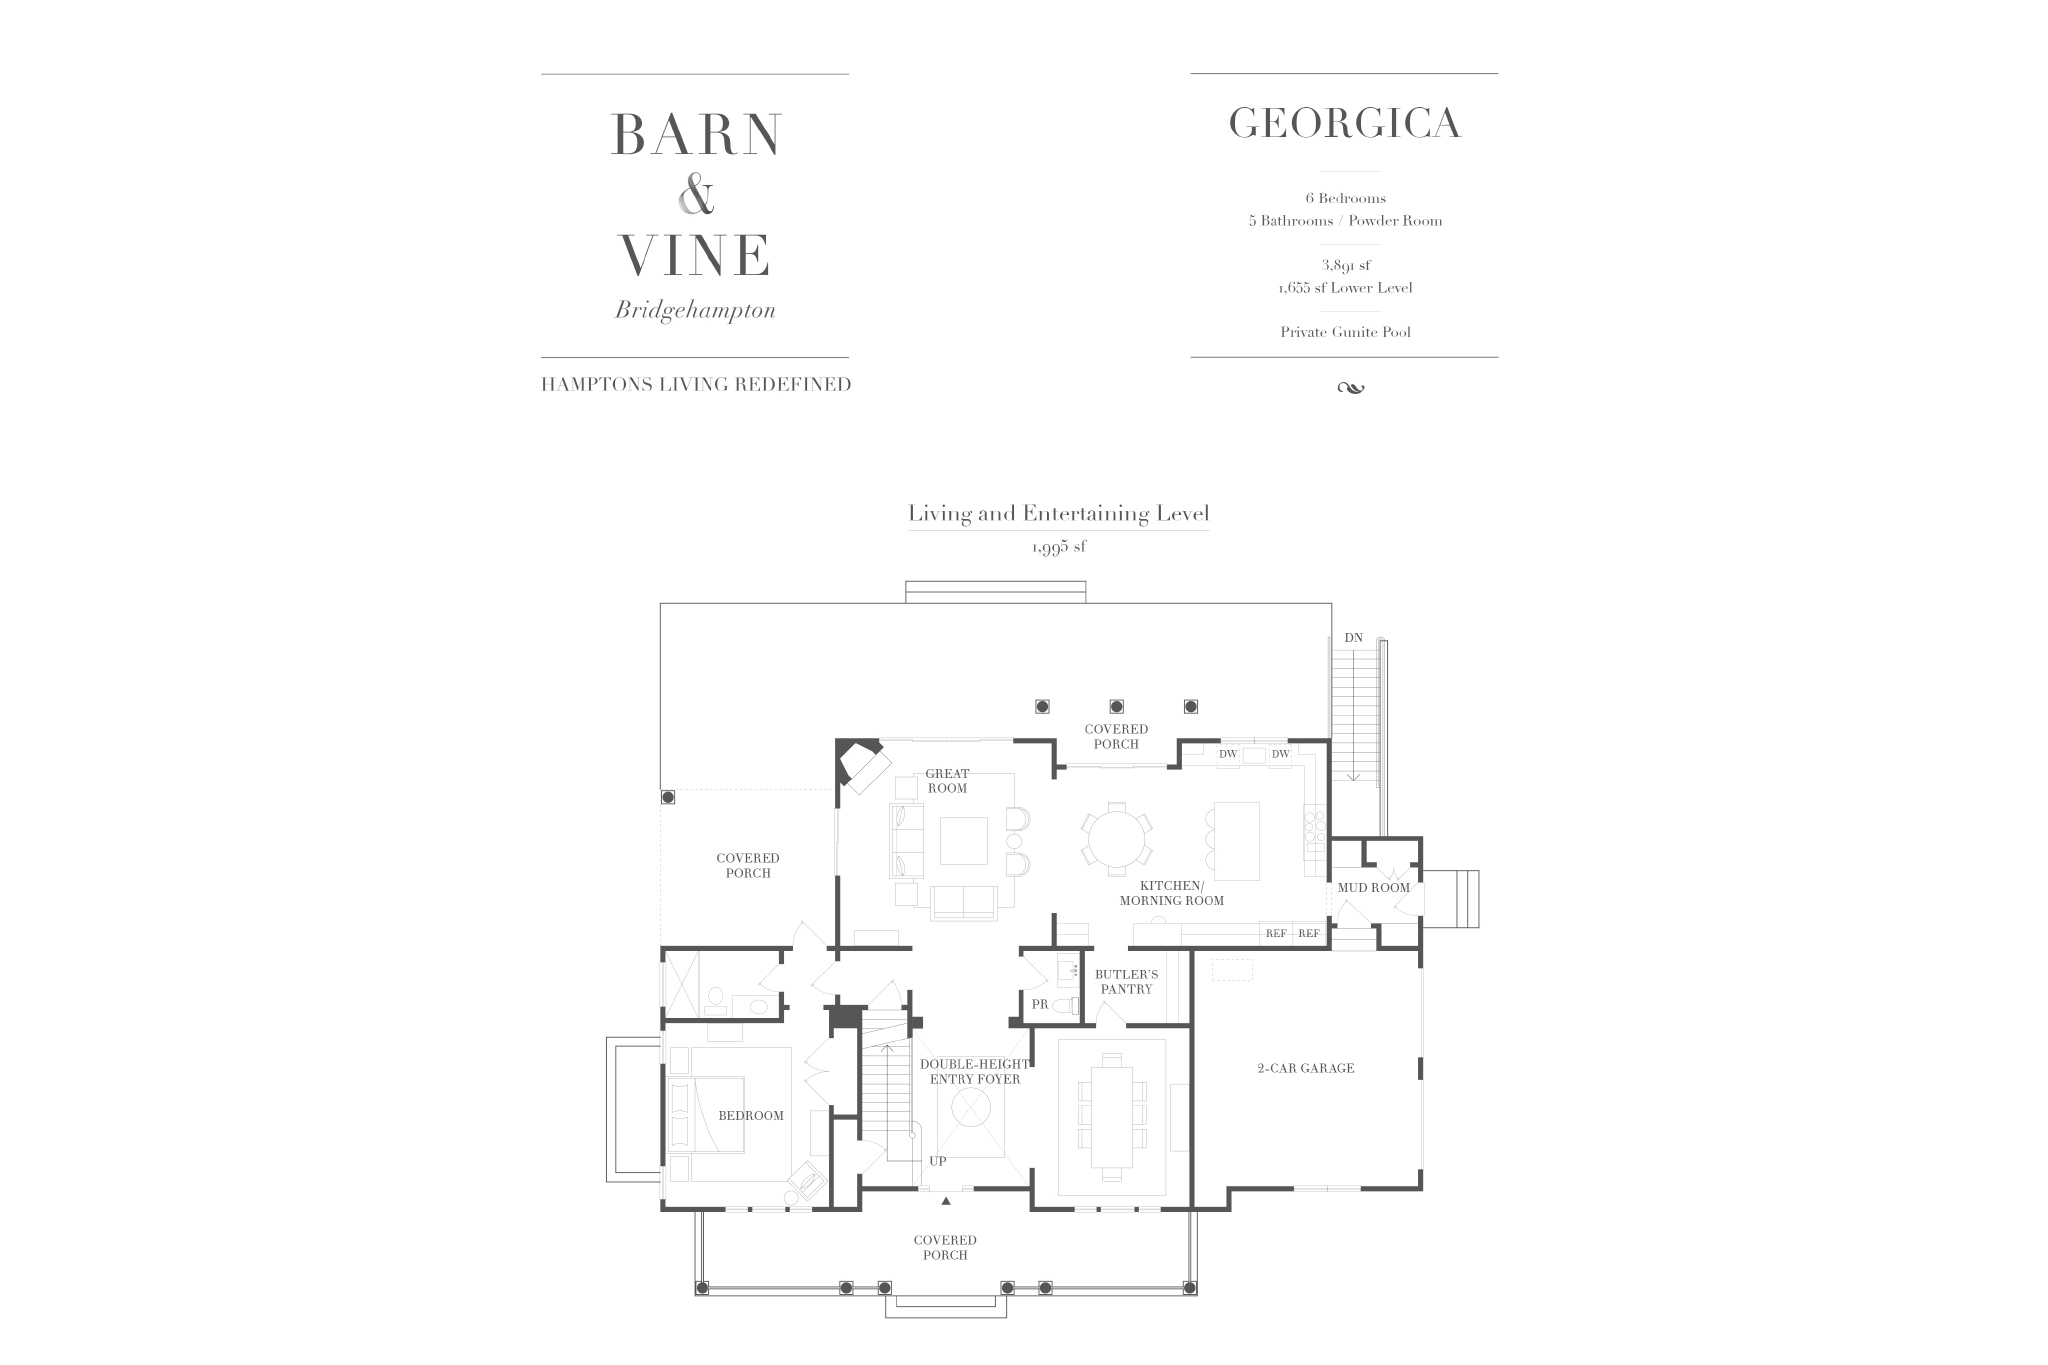 Single Family Home for Sale at Barn & Vine's Georgica. A Fresh Look At Bridgehampton Tradition 77 Birchwood Lane, (Georgica Model Lot 23), Bridgehampton, New York